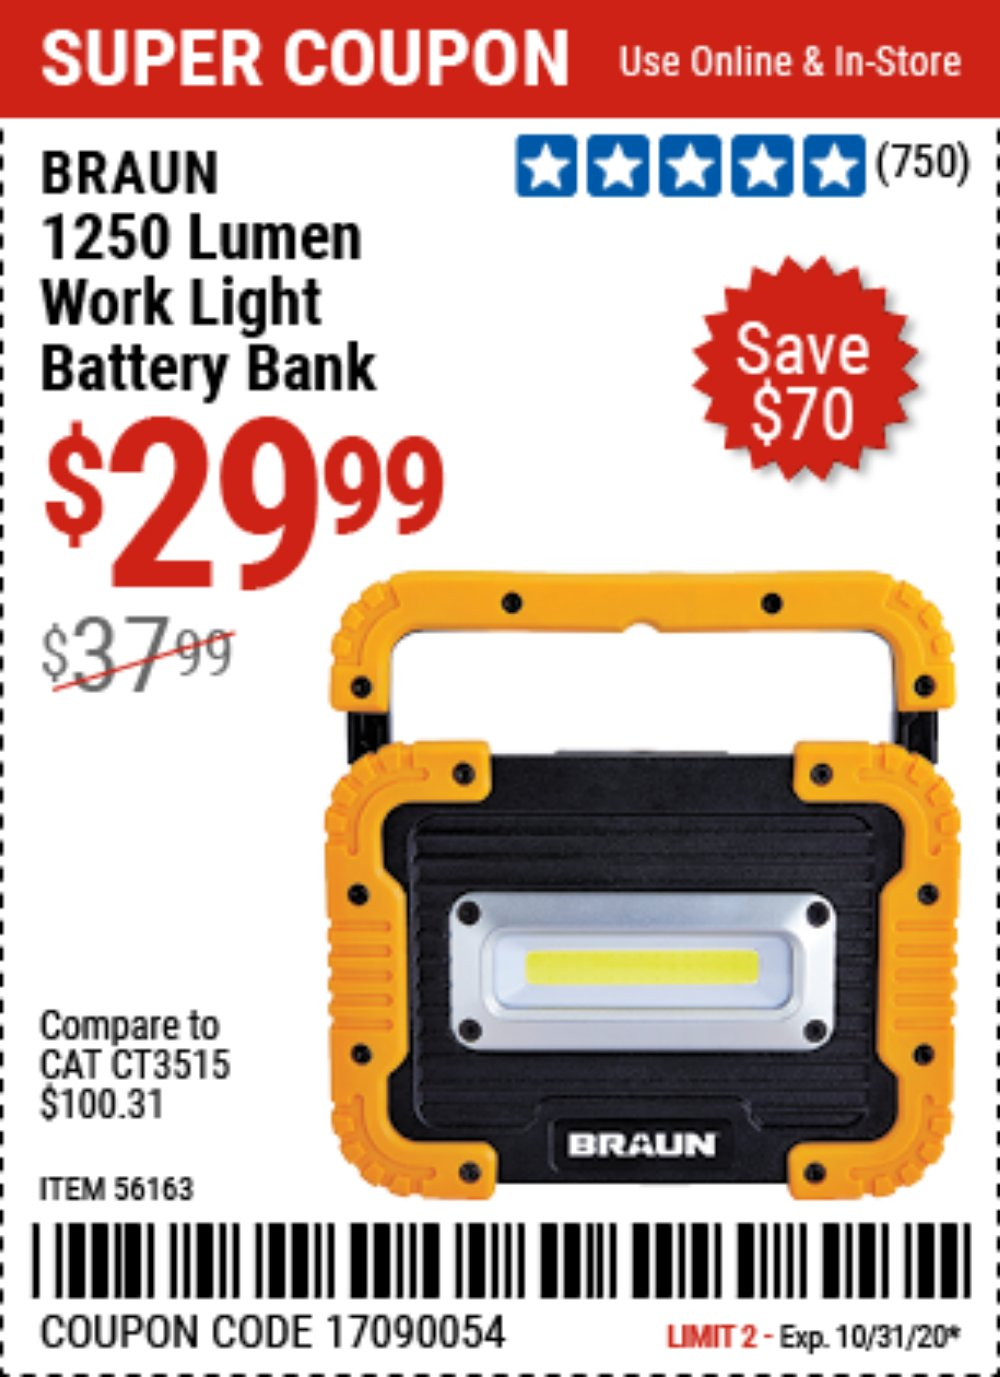 Harbor Freight Coupon, HF Coupons - 1250 Lumen Rechargeable Work Light Battery Bank